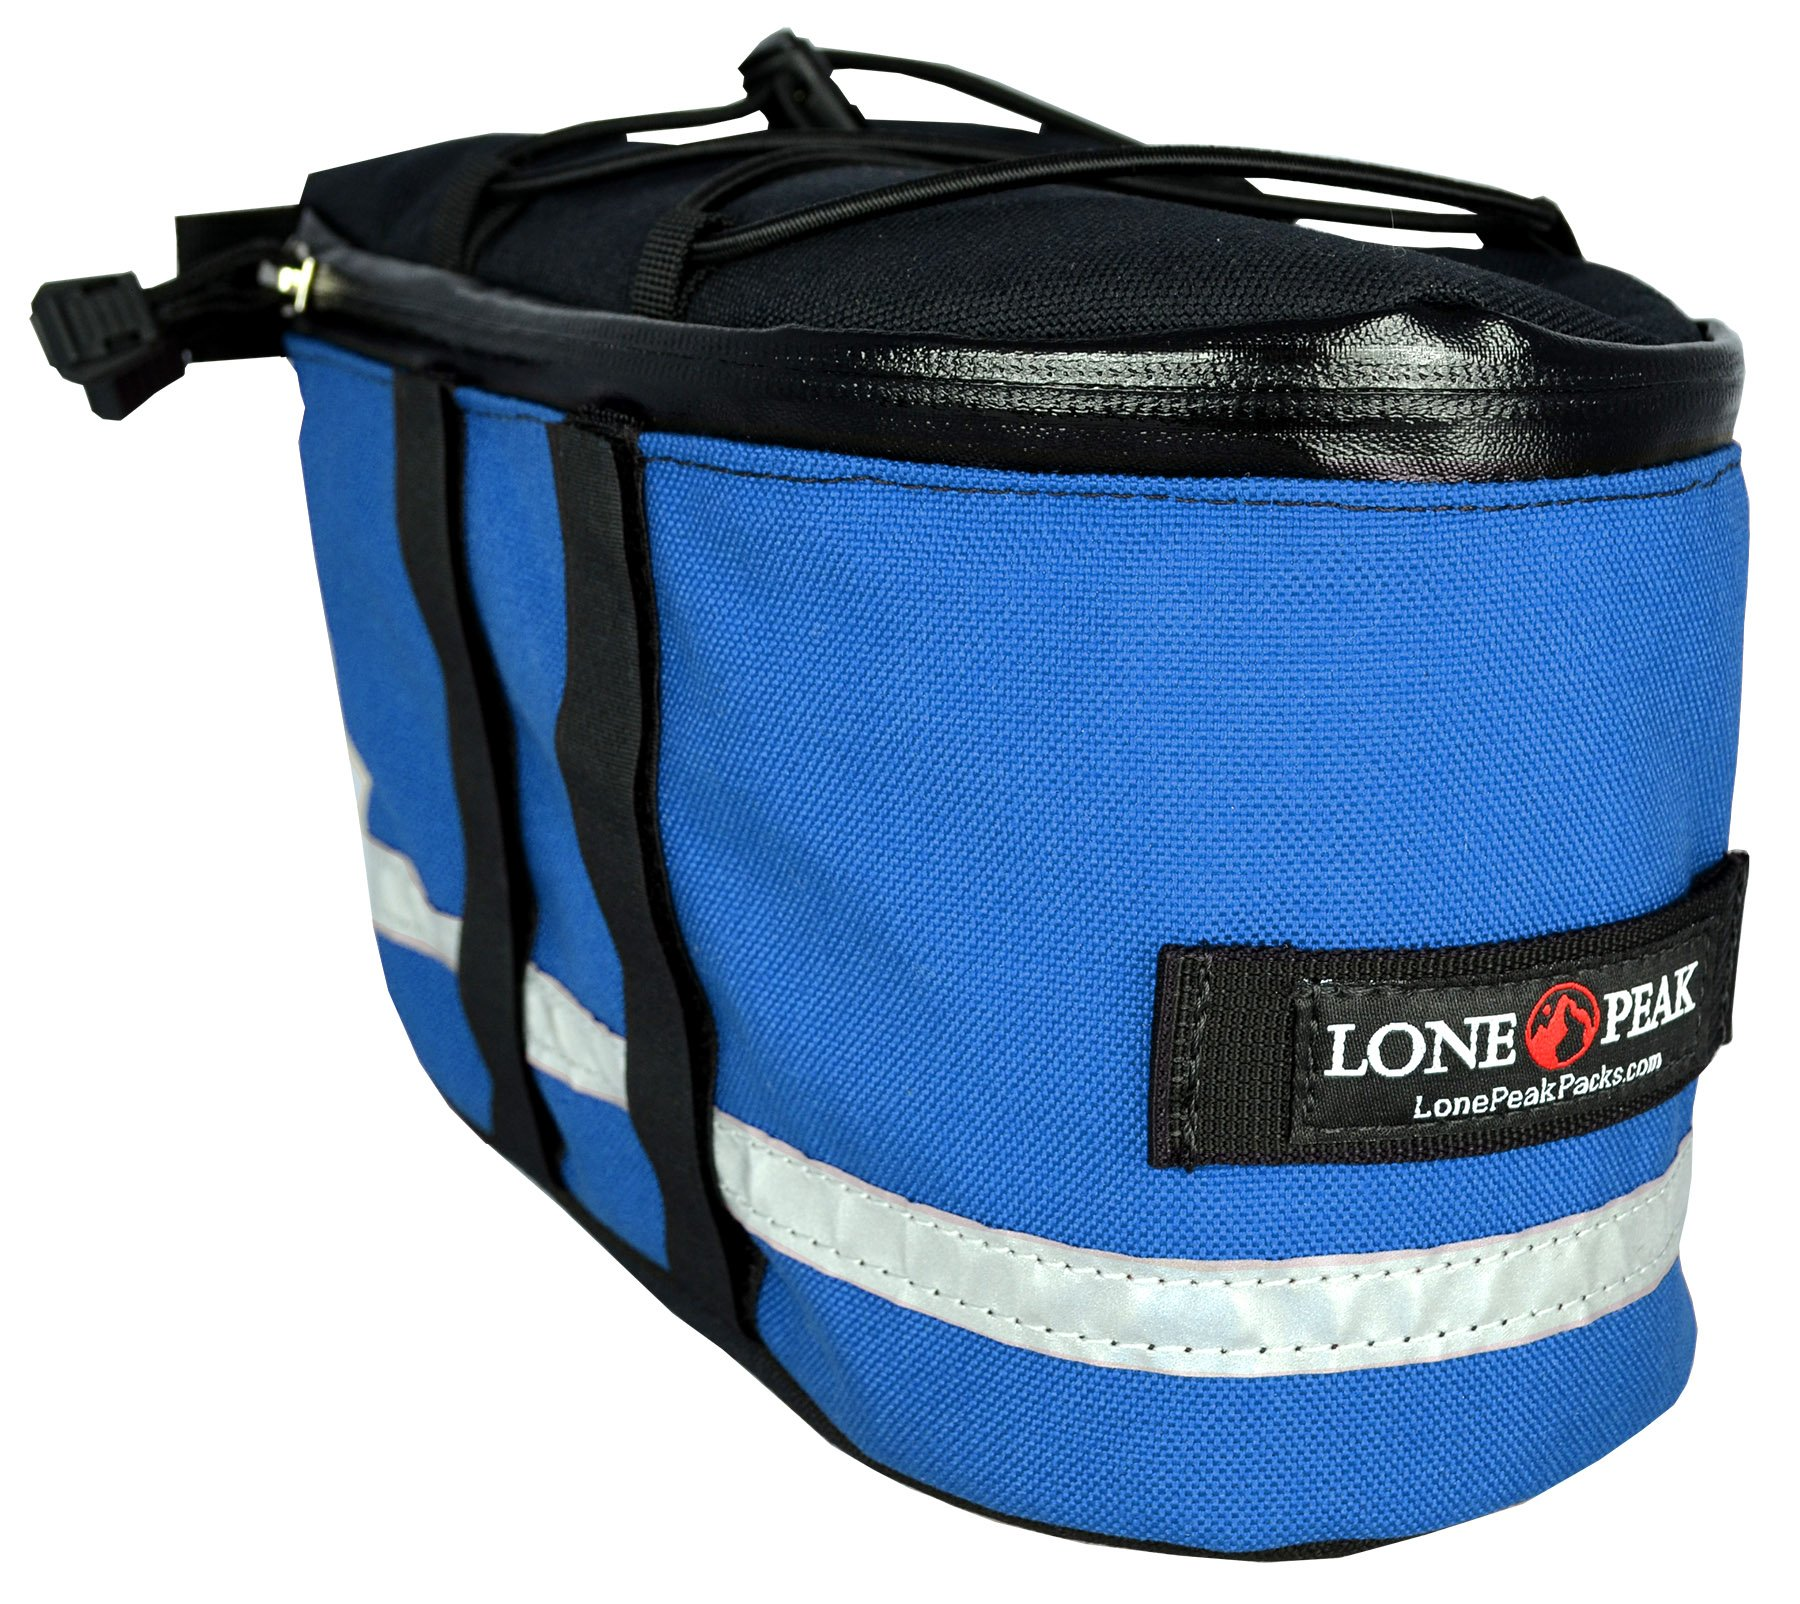 Lone Peak Micro Bicycle Rack Pack Bag blue by Lone Peak